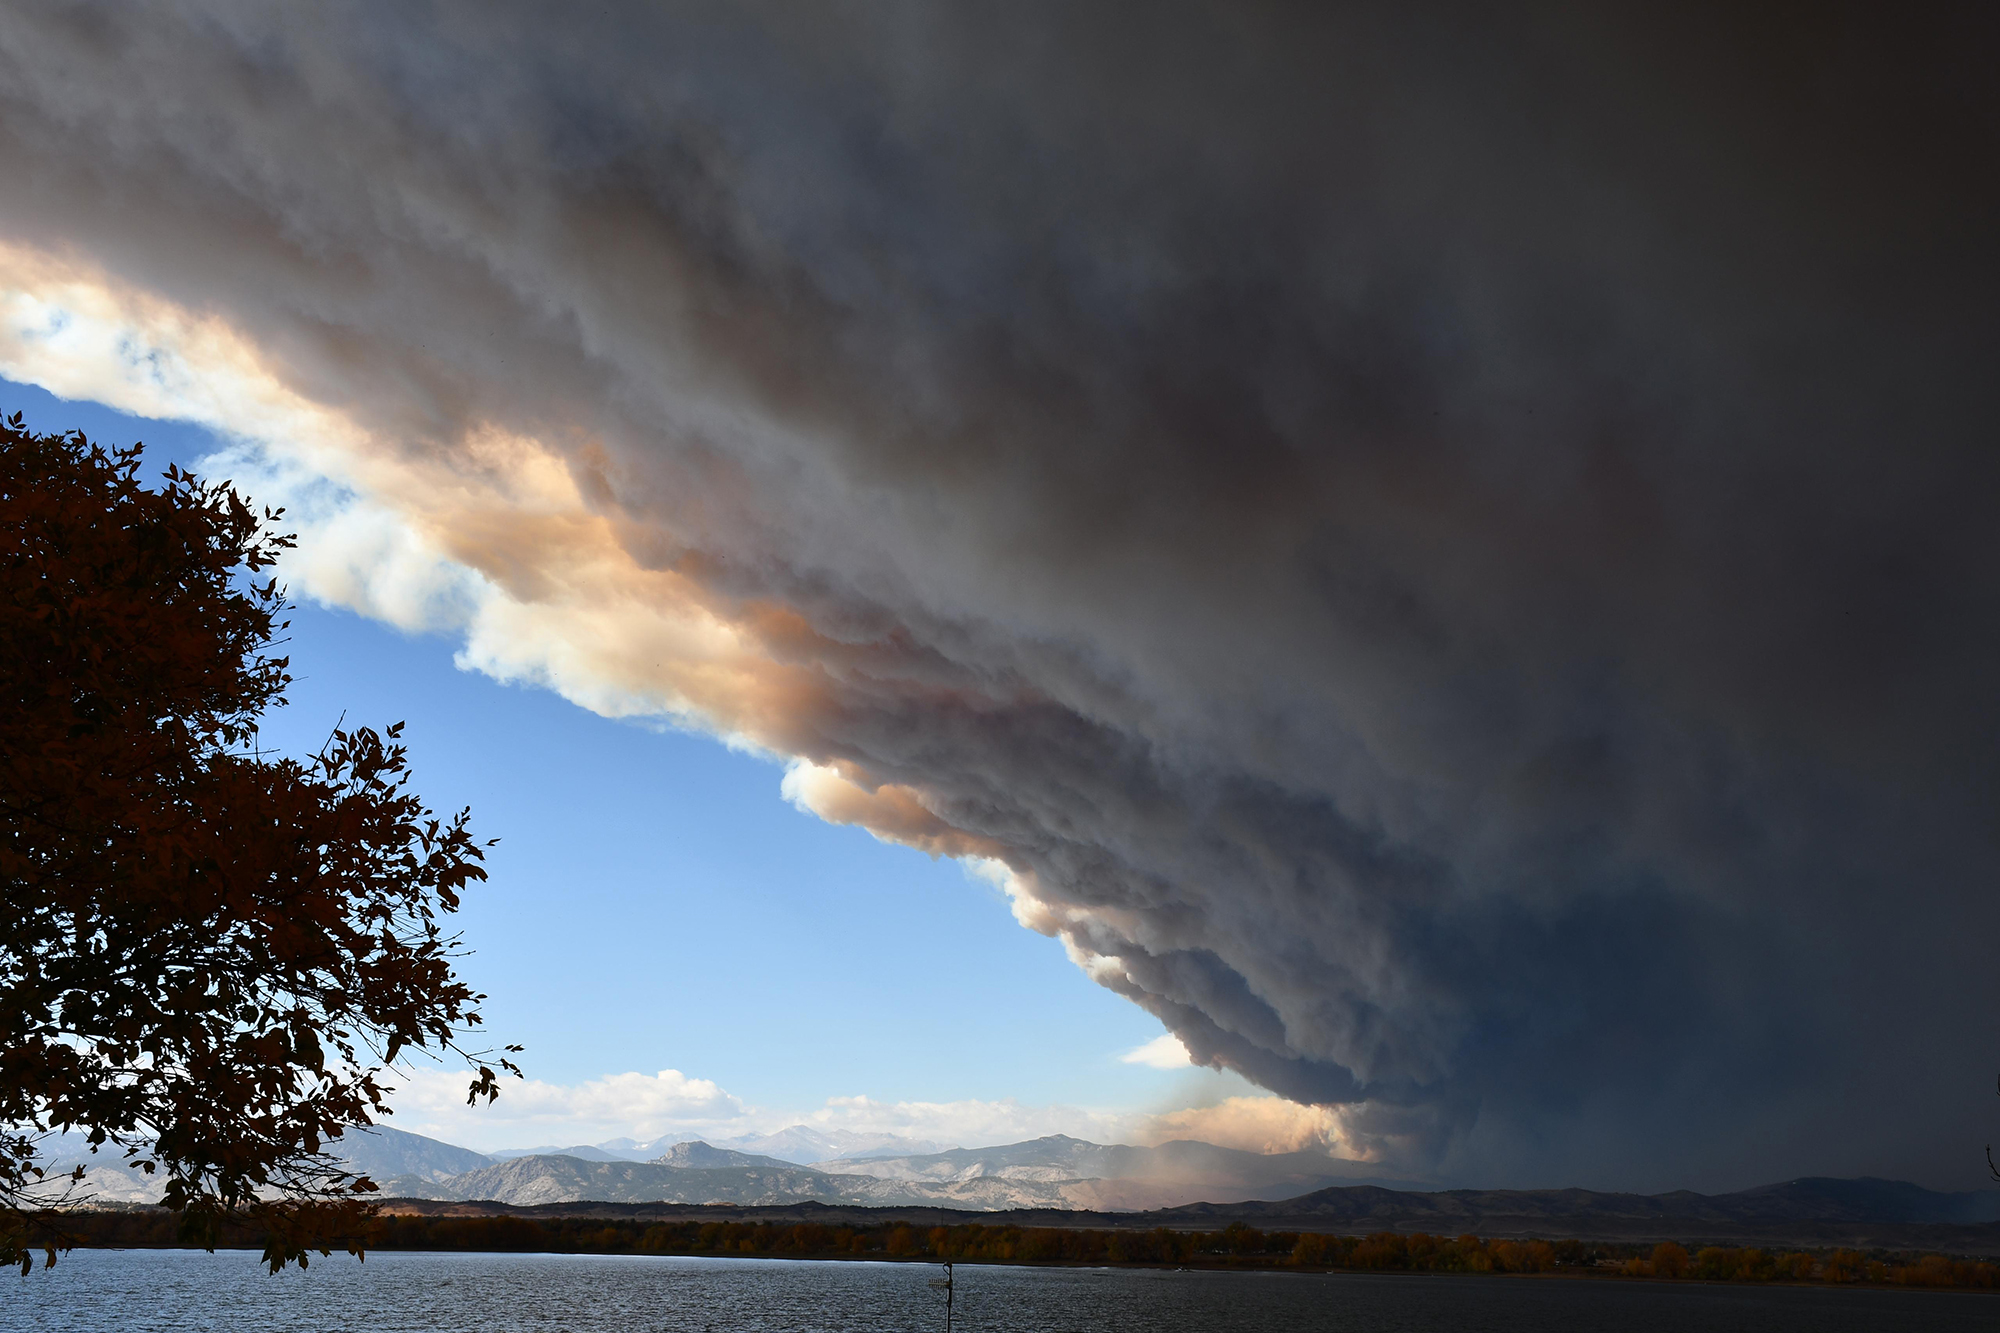 Smoke from the Cameron Peak fire seen from Boyd Lake. The fire burned aggressively Wednesday morning due to very high winds.